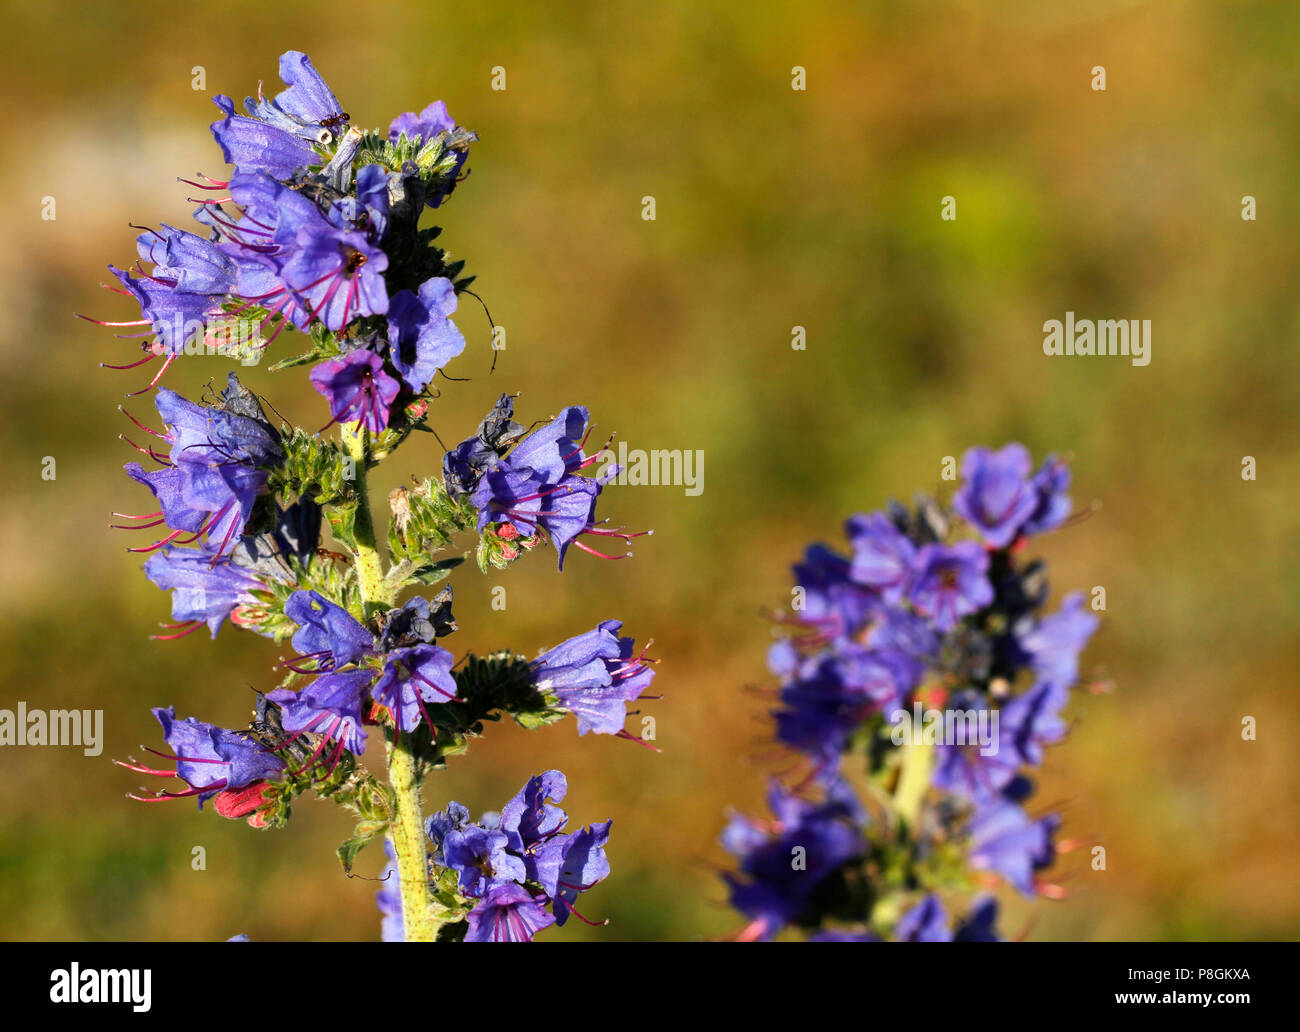 Vipers bugloss, Echium vulgare, on the seashore of Gotland Island in Sweden. - Stock Image